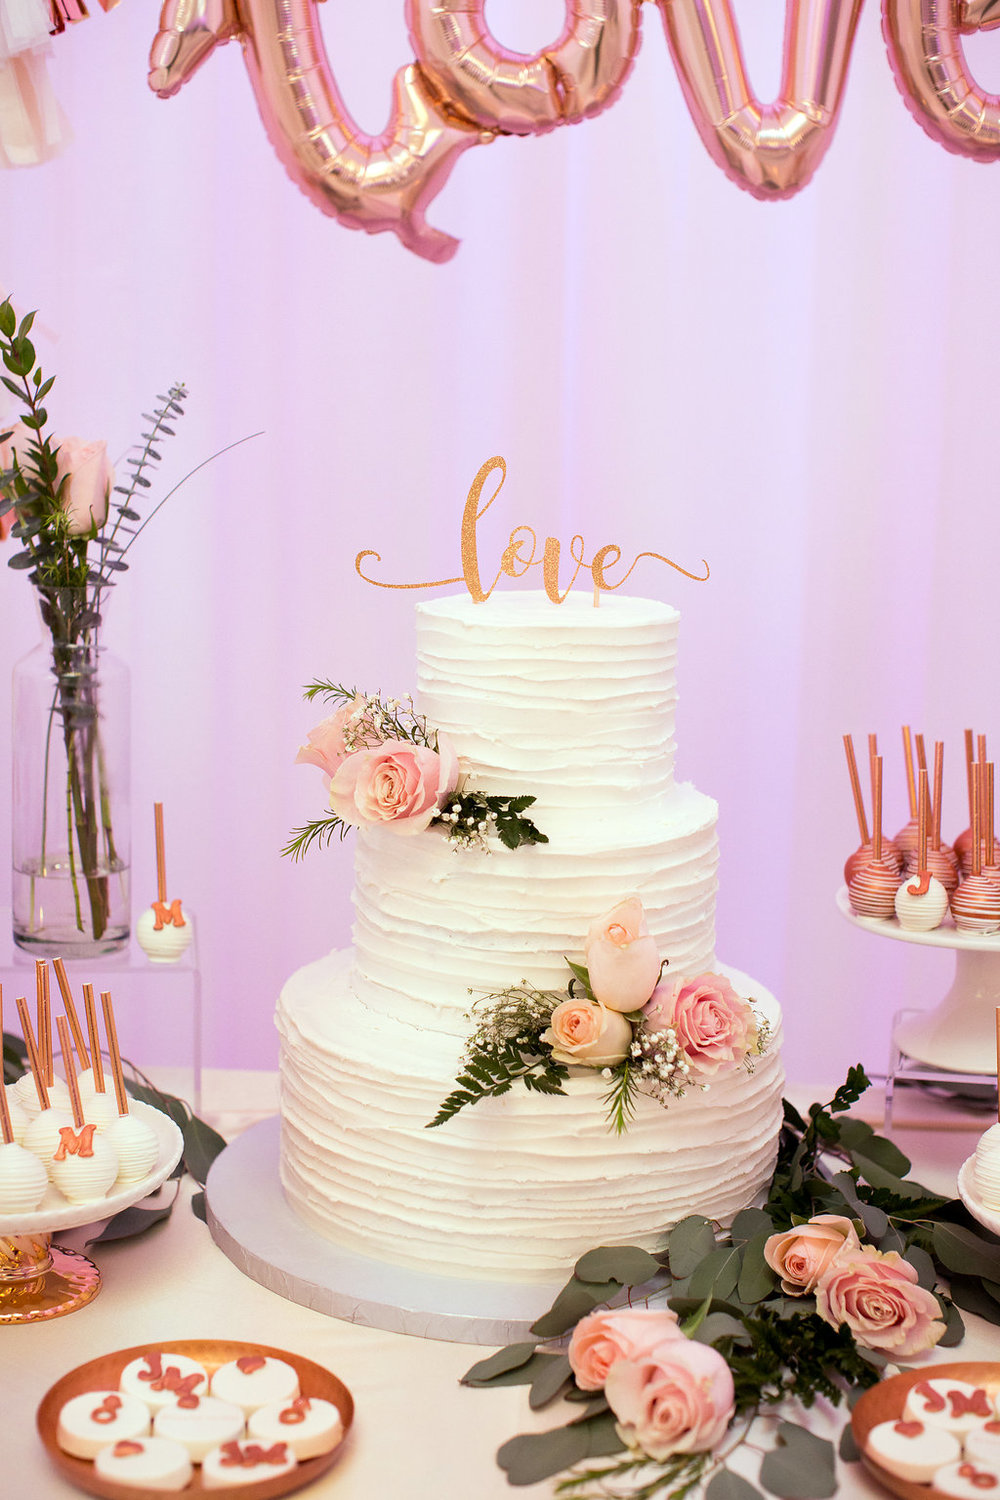 Rose Gold Dessert Table-Rose Gold wedding-rose quartz-Wedding Desserts-Engagement party-Copper Desserts-Decorated wedding donuts-Wedding Cake-Love cake topper-Engagement Cake-She said Yes-www.SugarPartiesLA.com